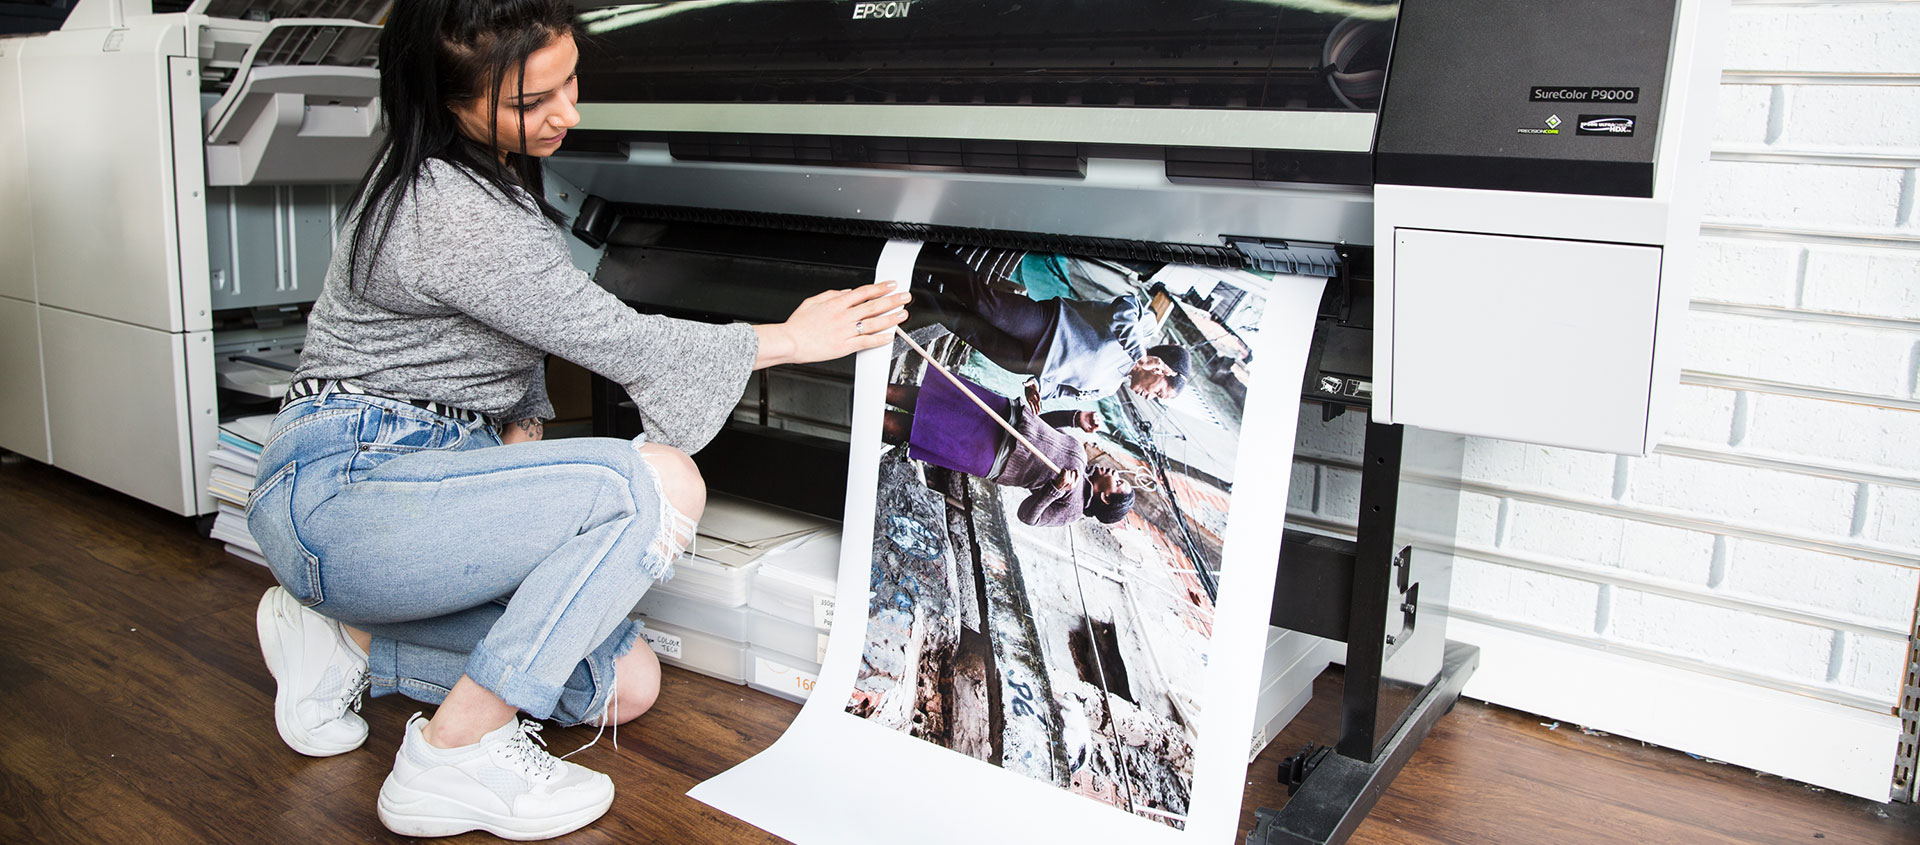 High-quality large format printing